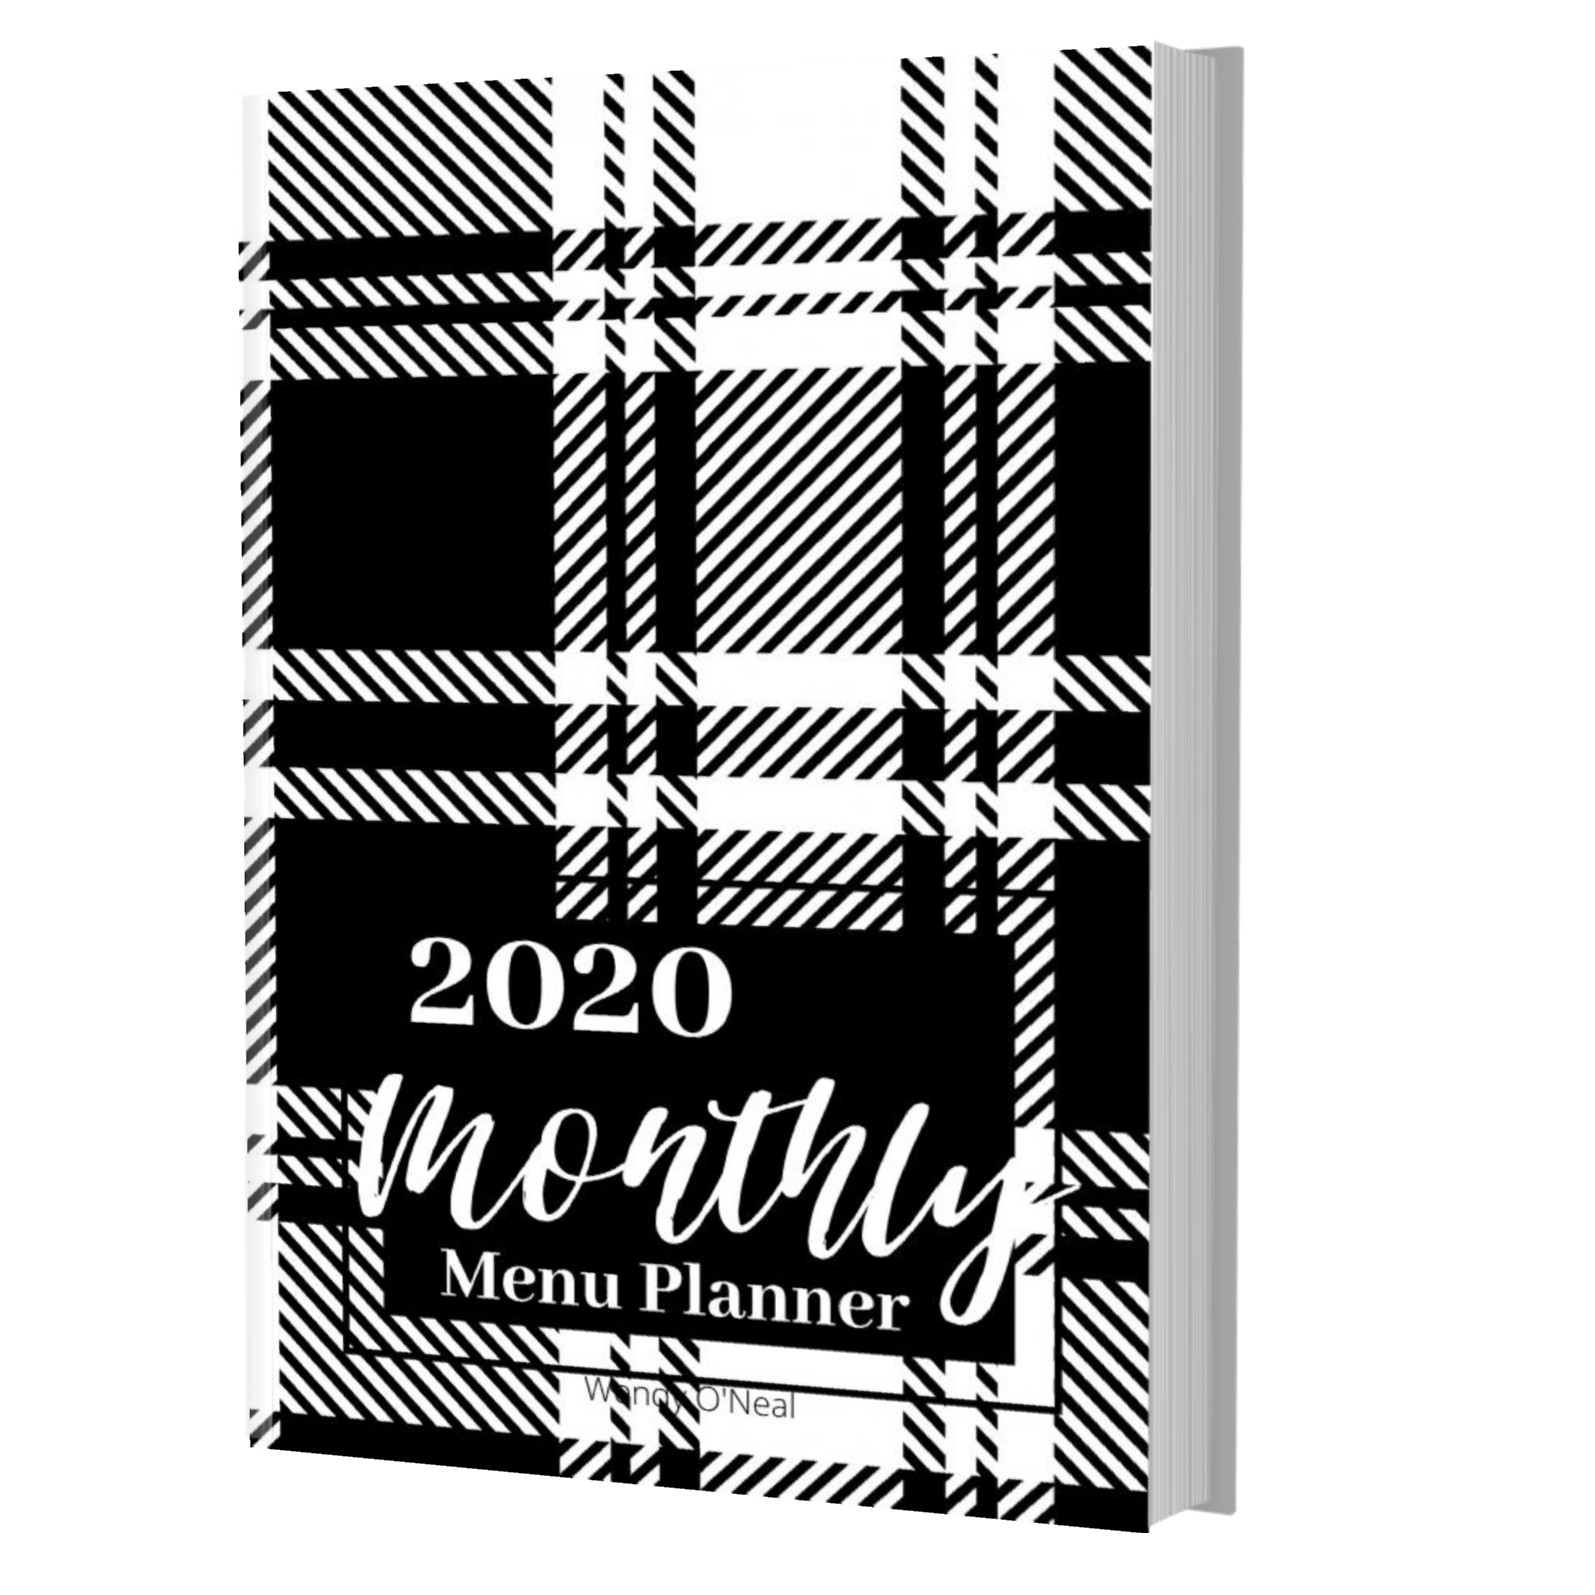 Don't let busy schedules keep you from planning healthy meals for your family. Get a handle on menu planning, shopping, and recipe list with this black & white 6 x 9 Menu Planner. Order your menu planning journal TODAY.